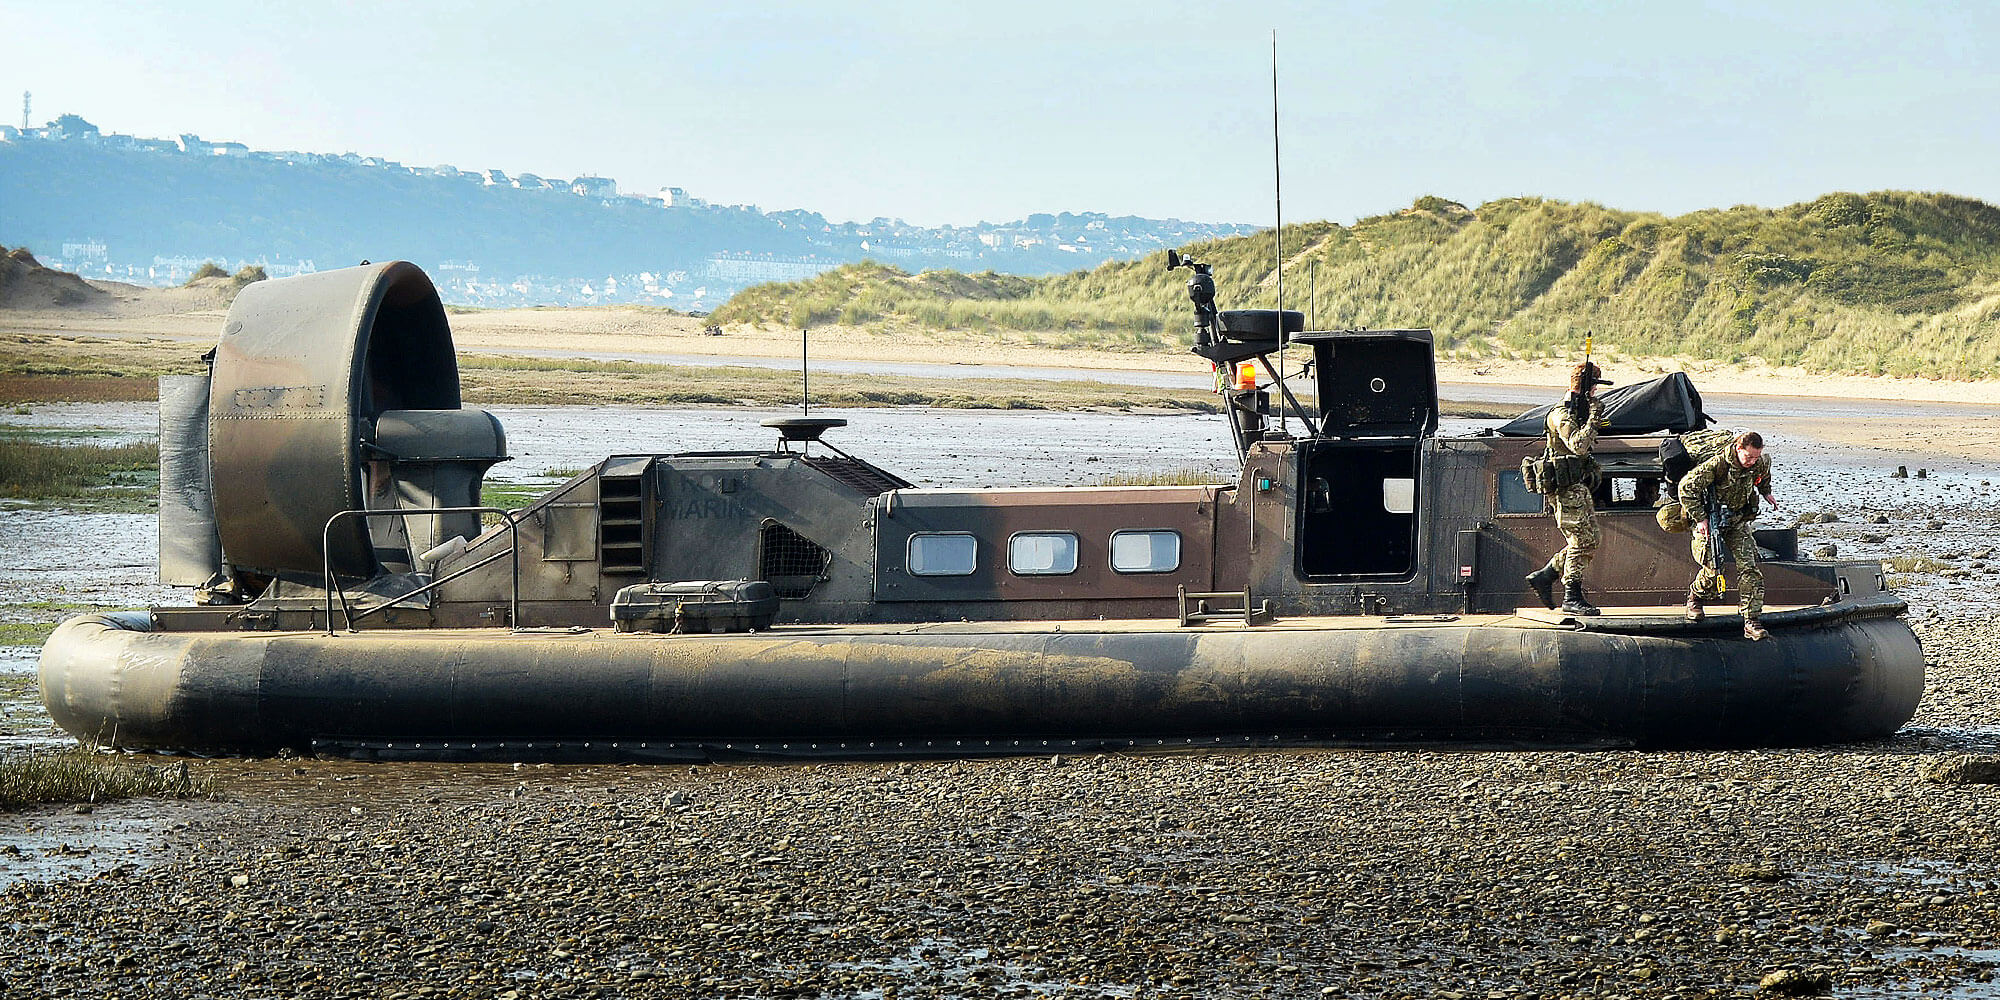 Royal Marine LCAC Hovercraft